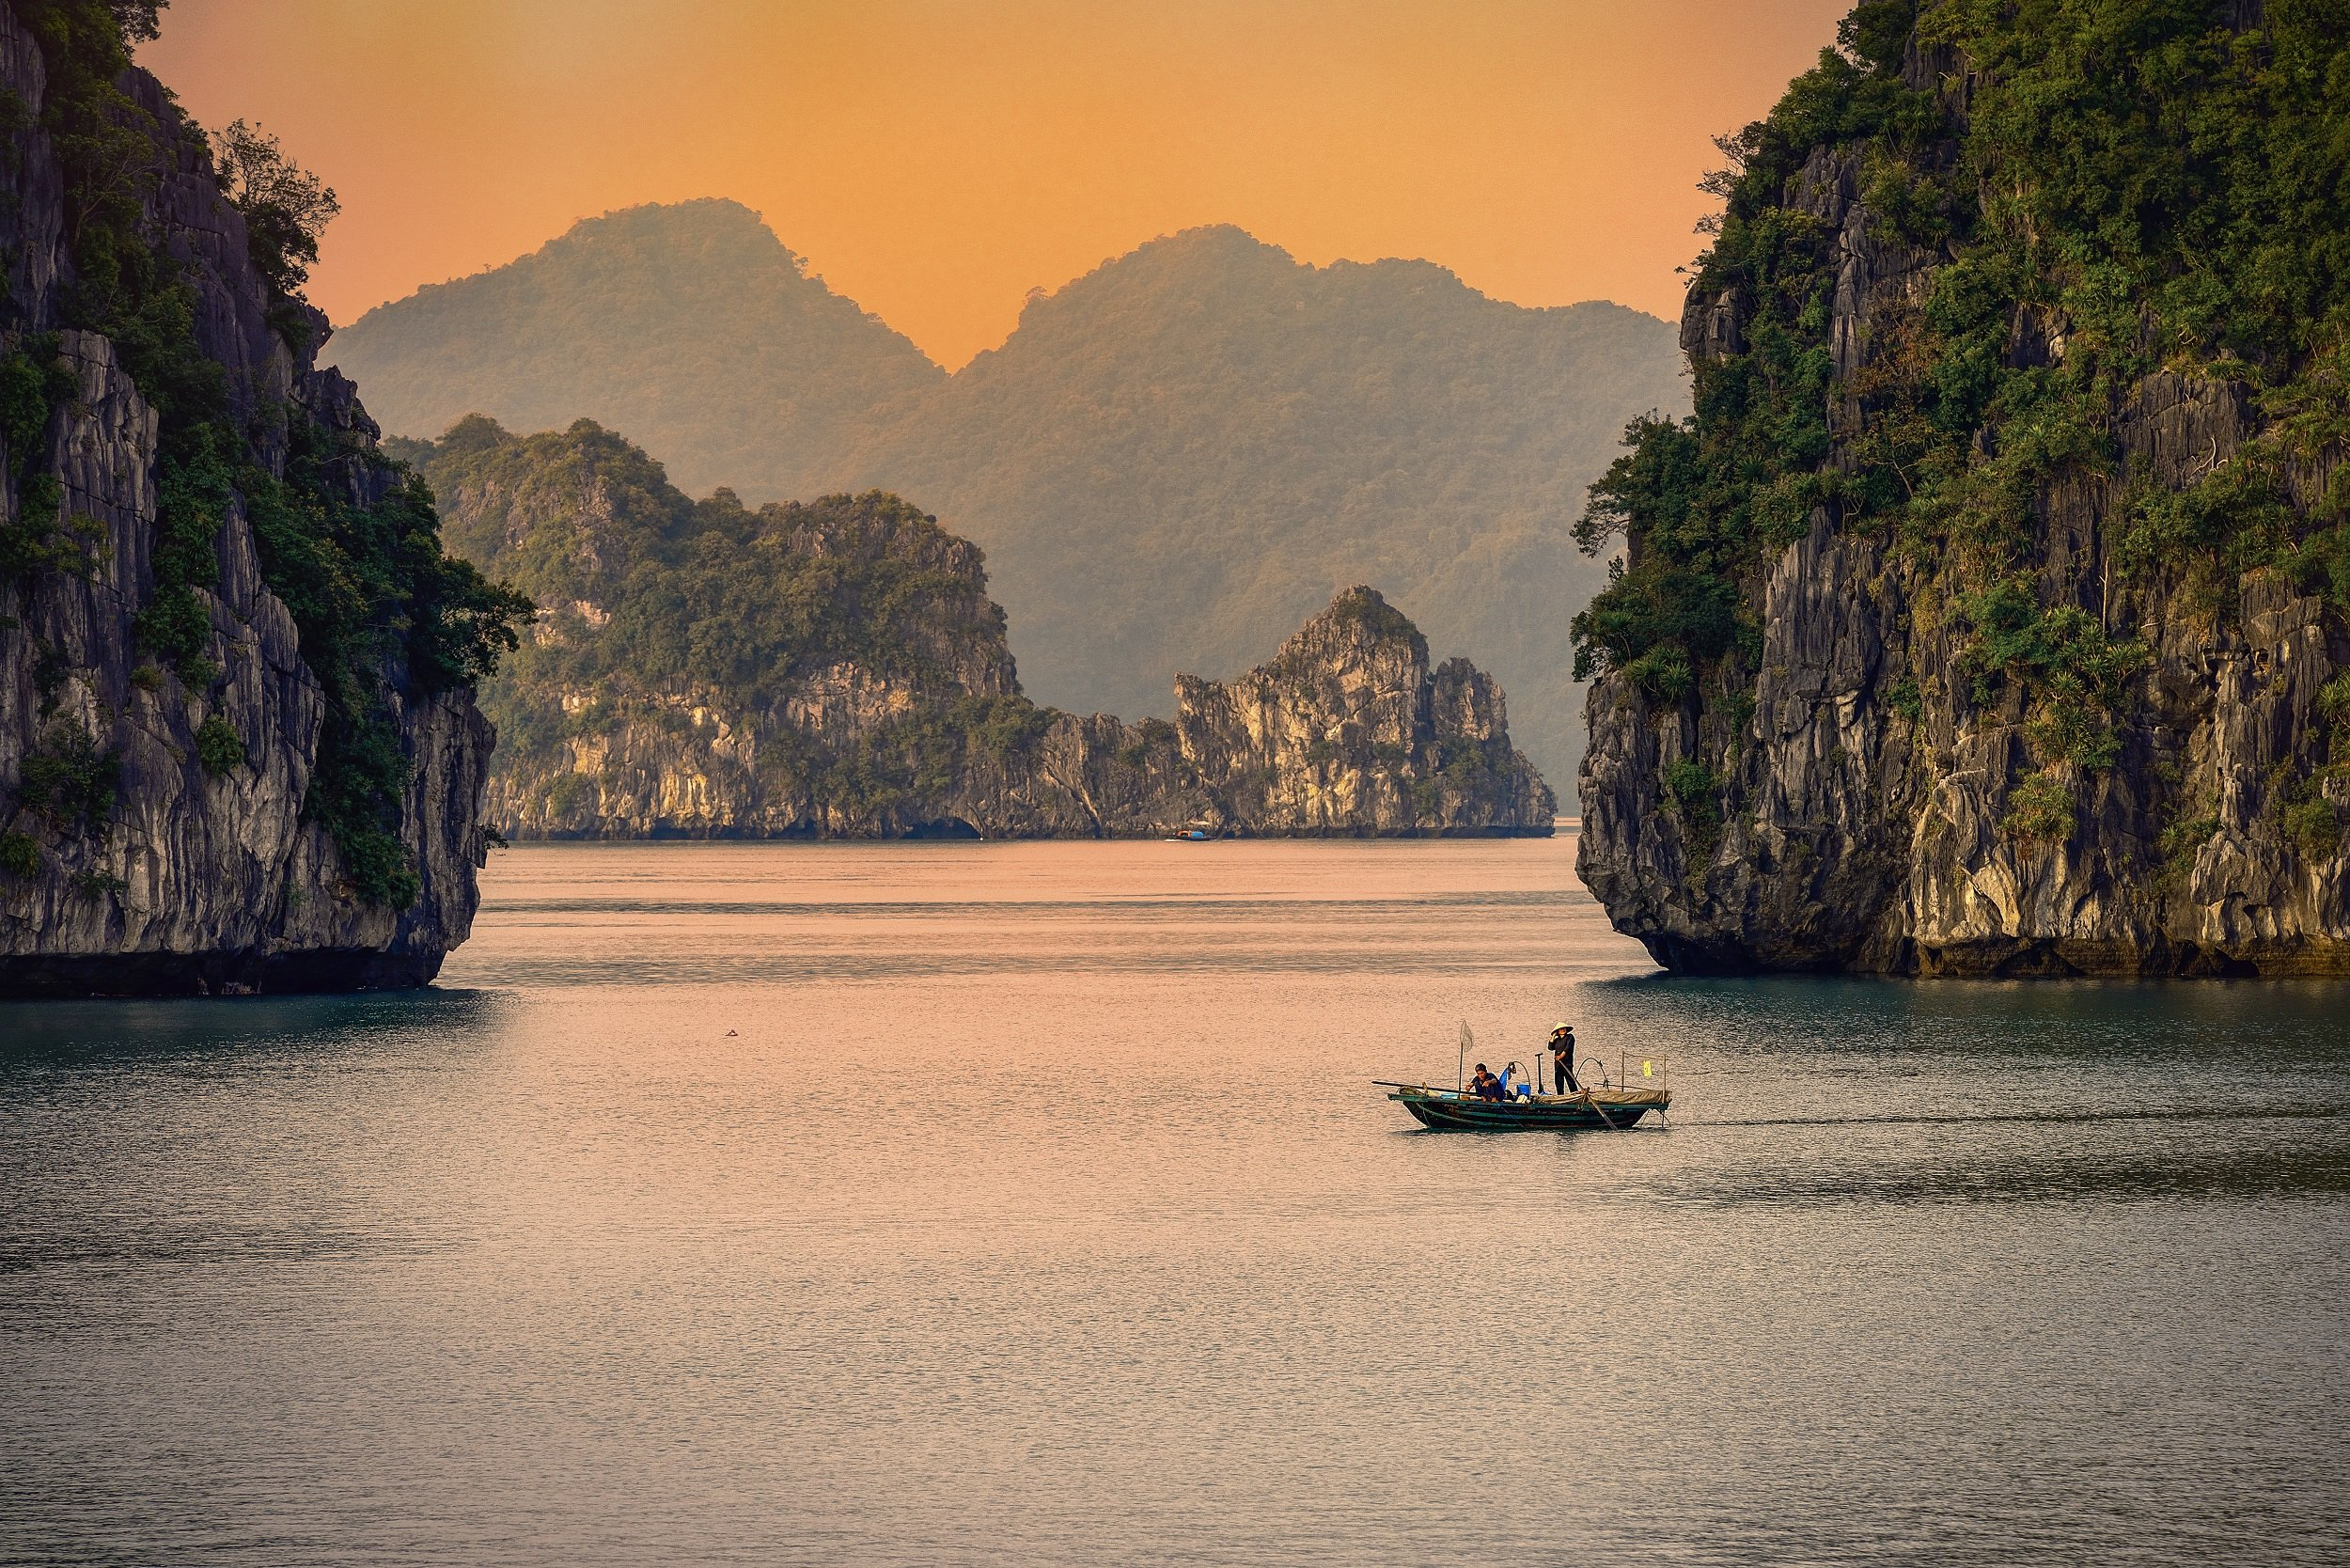 Relax On A Cruise At The Famous Ha Long Bay On The 15 Day Vietnam Wellbeing & Yoga Package Tour